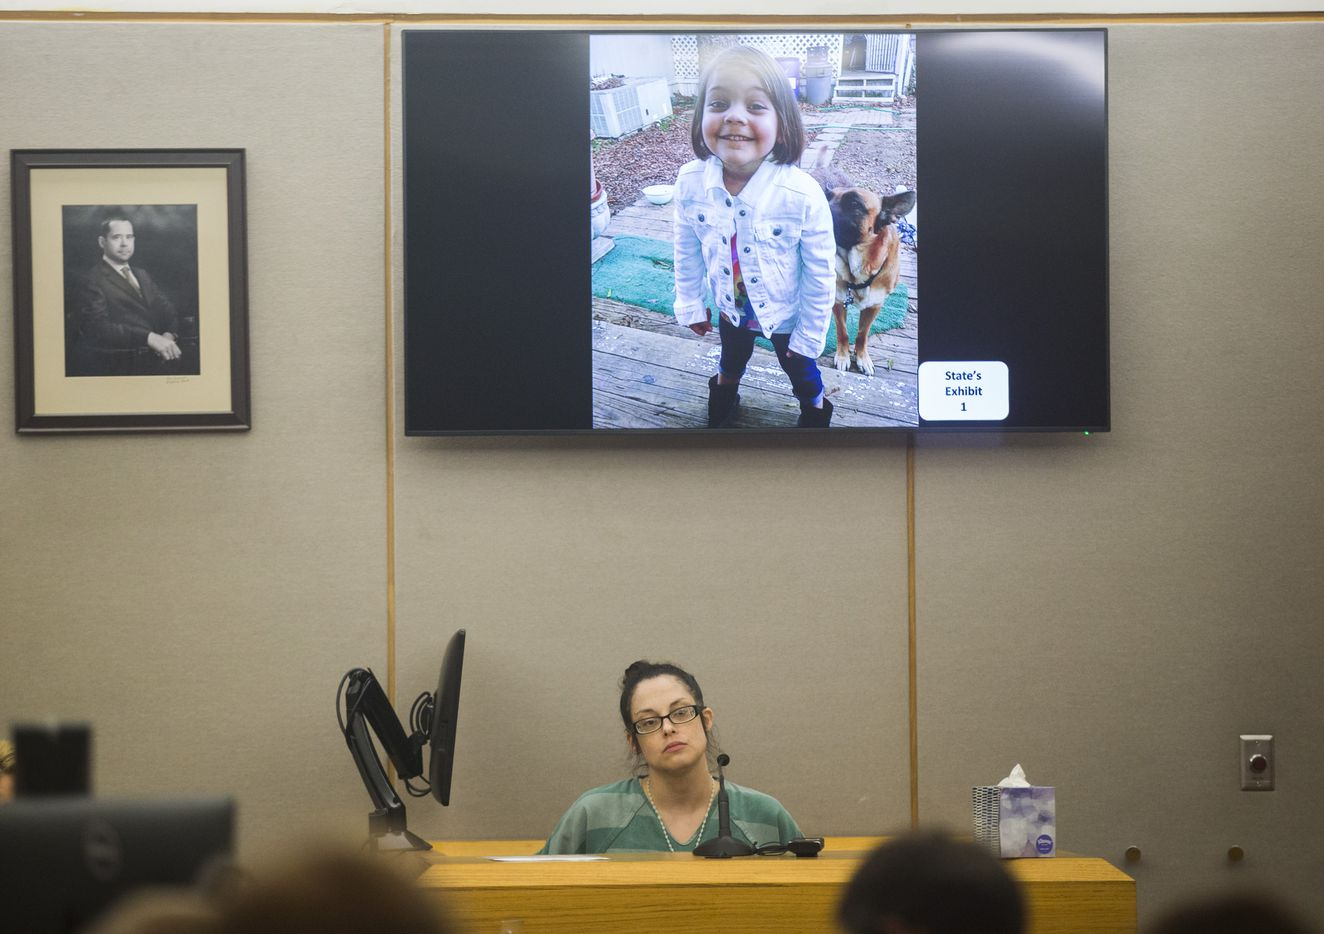 Jeri Quezada, the mother of Leiliana Wright, testified against Charles Phifer. She took a plea deal and will be sentenced to 50 years in prison.